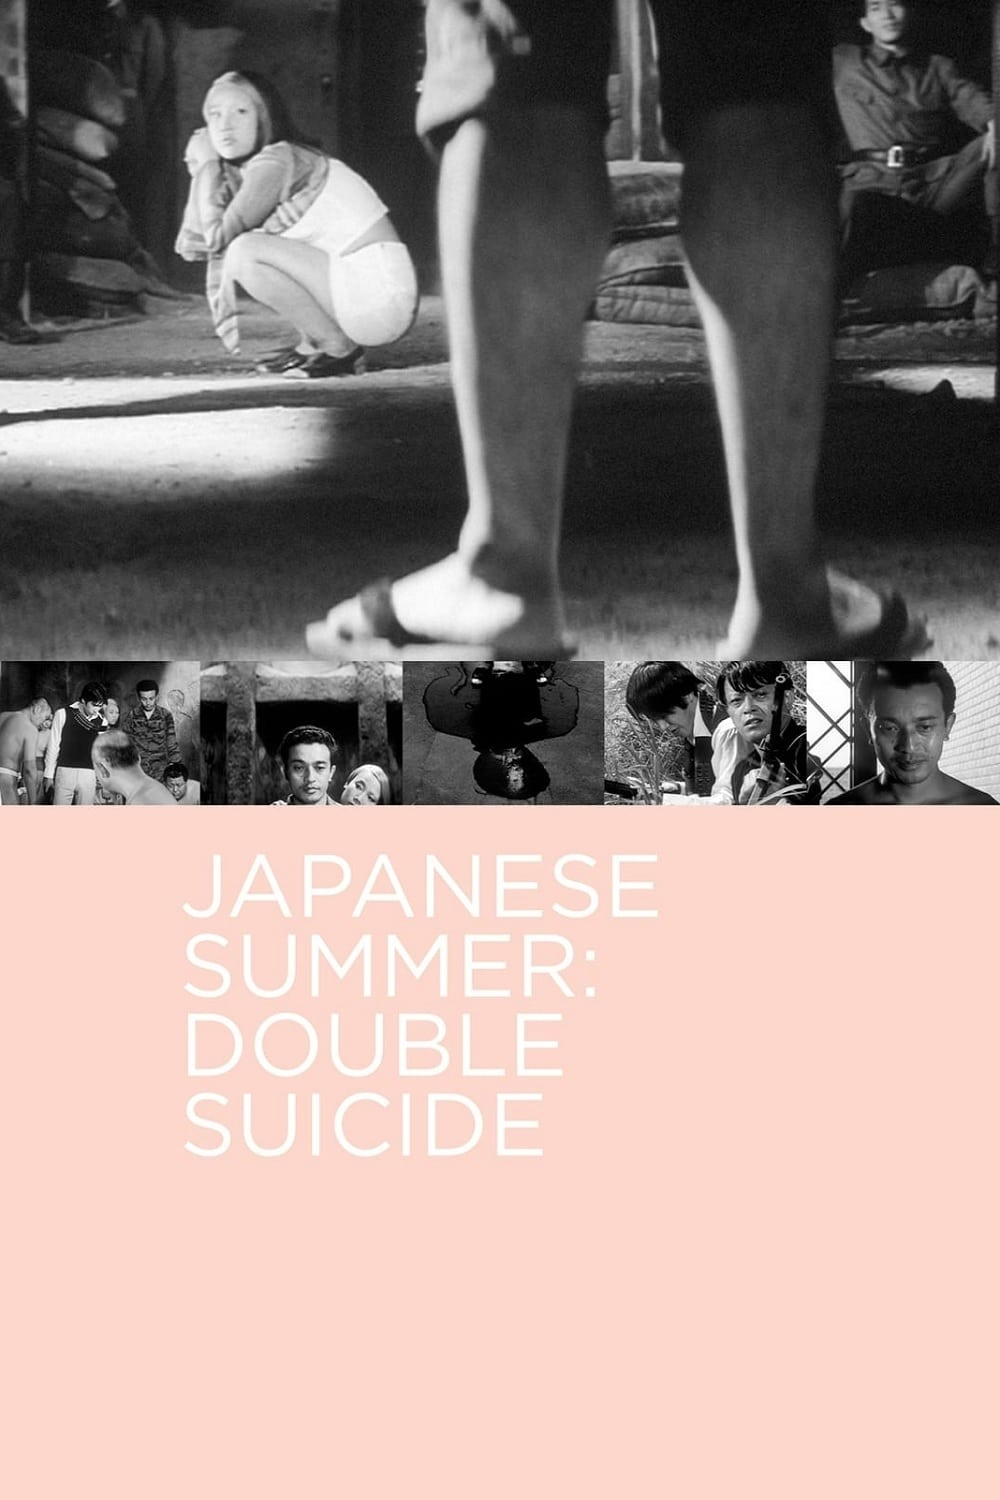 Japanese Summer: Double Suicide (1967)